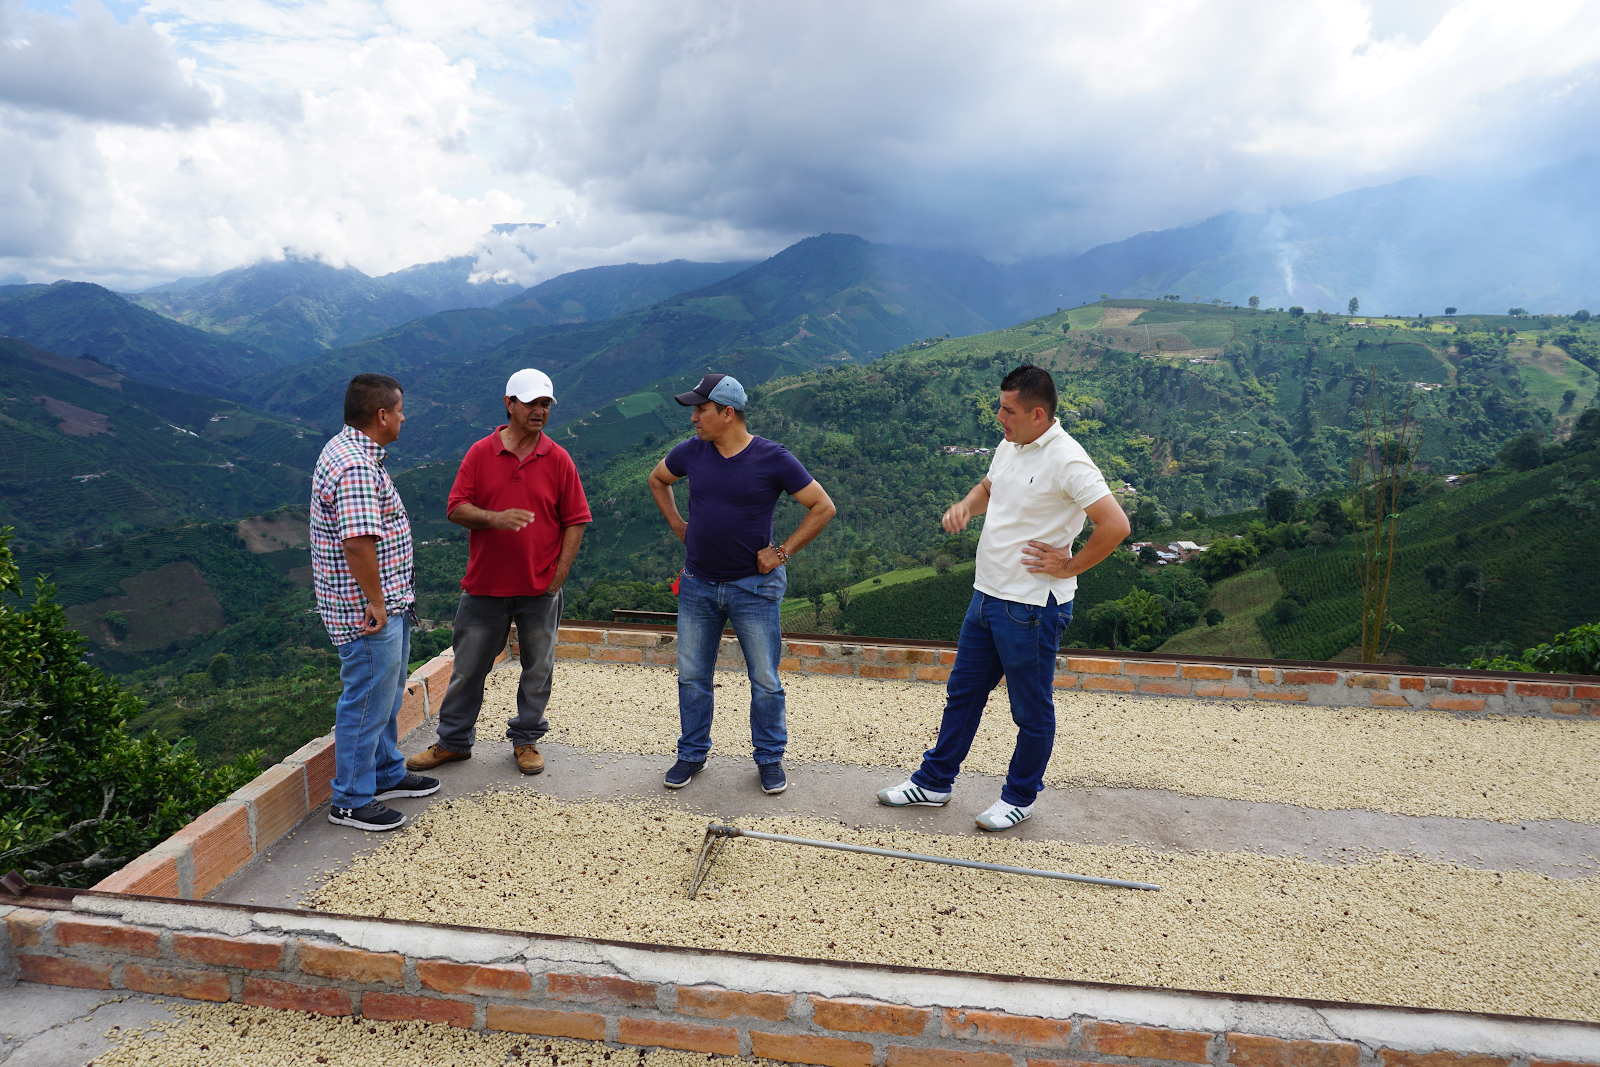 Risaralda producers talking shop on a rooftop drying patio near Santuario. We spent the day with members of six Risaralda growers associations and were blown away by the generosity, support, and knowledge shared among the coffee community in the area. The producers there  believe that with their unique terroir and quality improvements they could one day be known as one of the premiere coffee growing regions in Colombia.